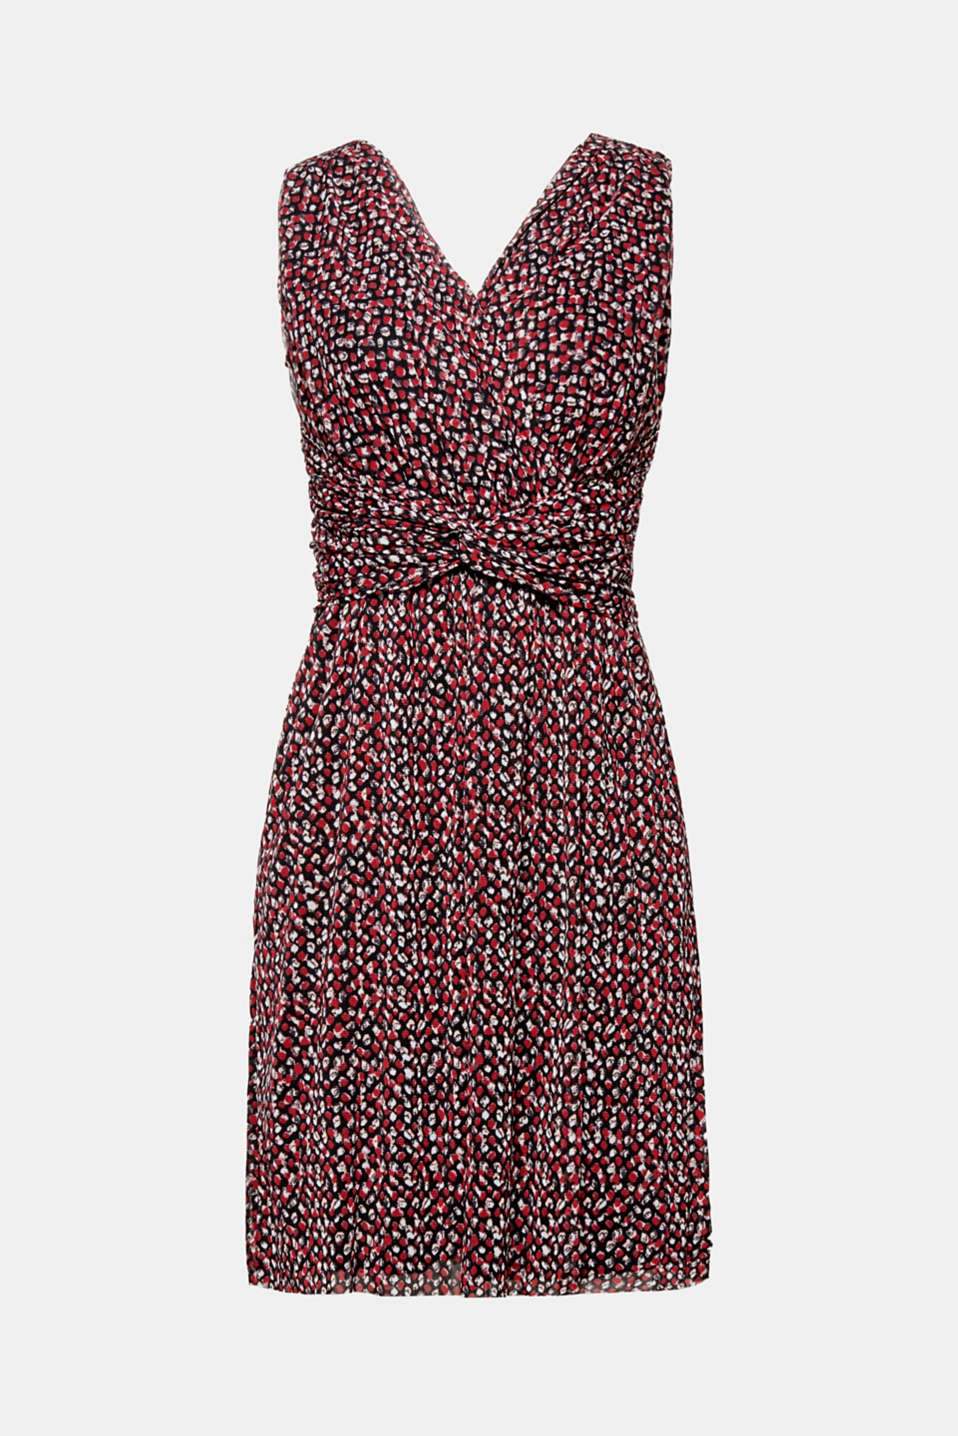 This flowing mesh dress suitable for many different occasions is a fine, eye-catching piece thanks to its polka dot pattern.